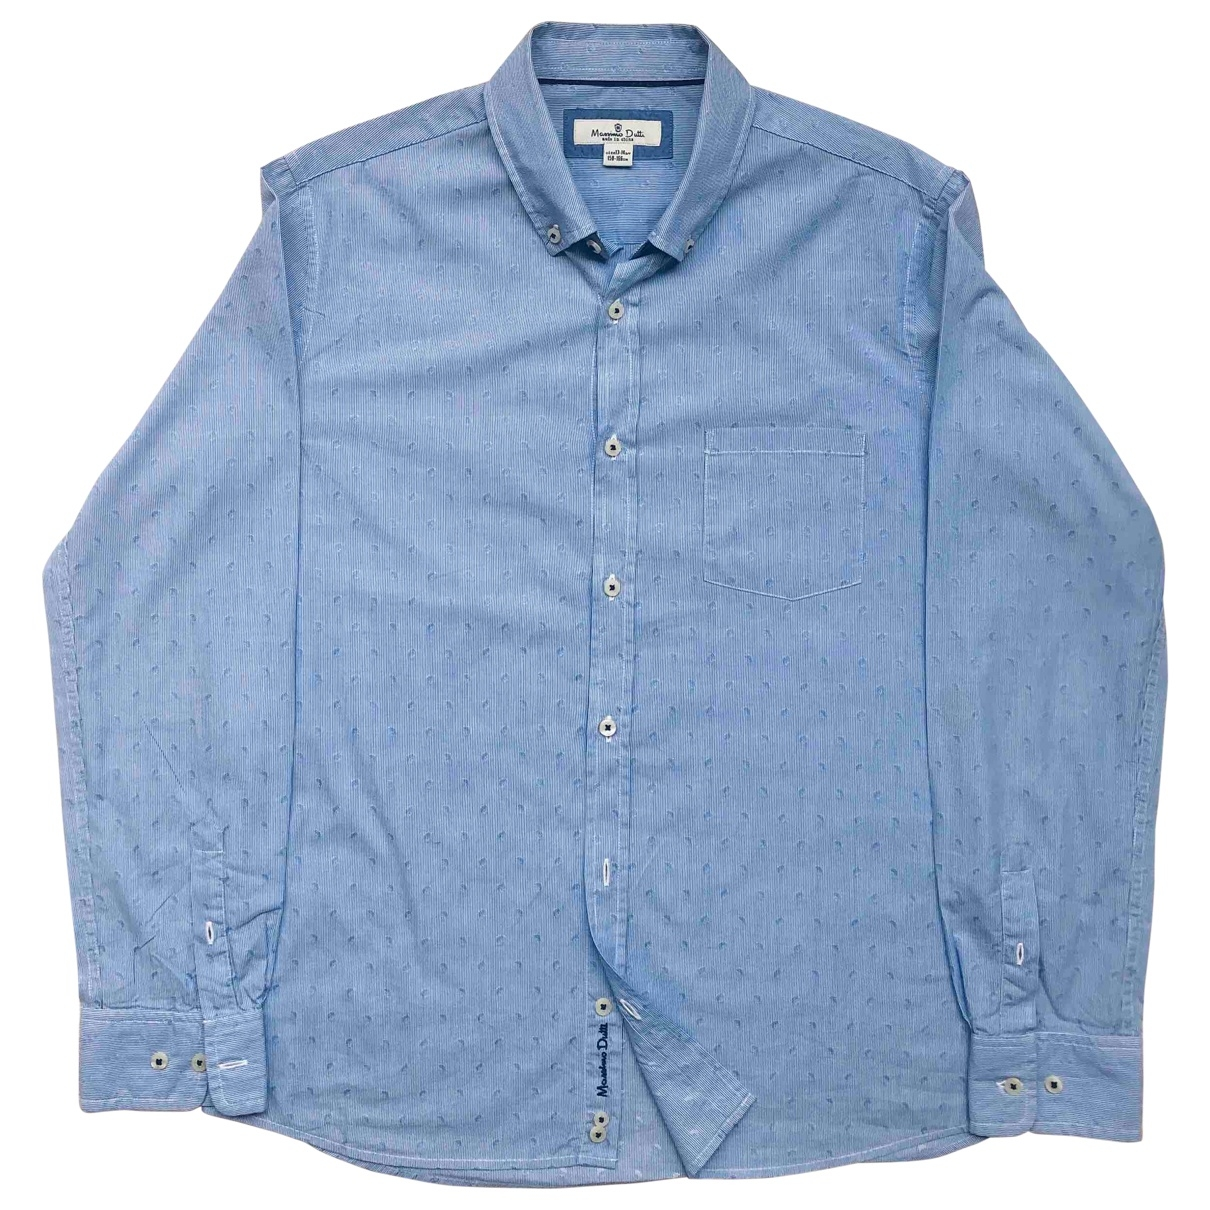 Massimo Dutti \N Blue Cotton  top for Kids 14 years - S FR